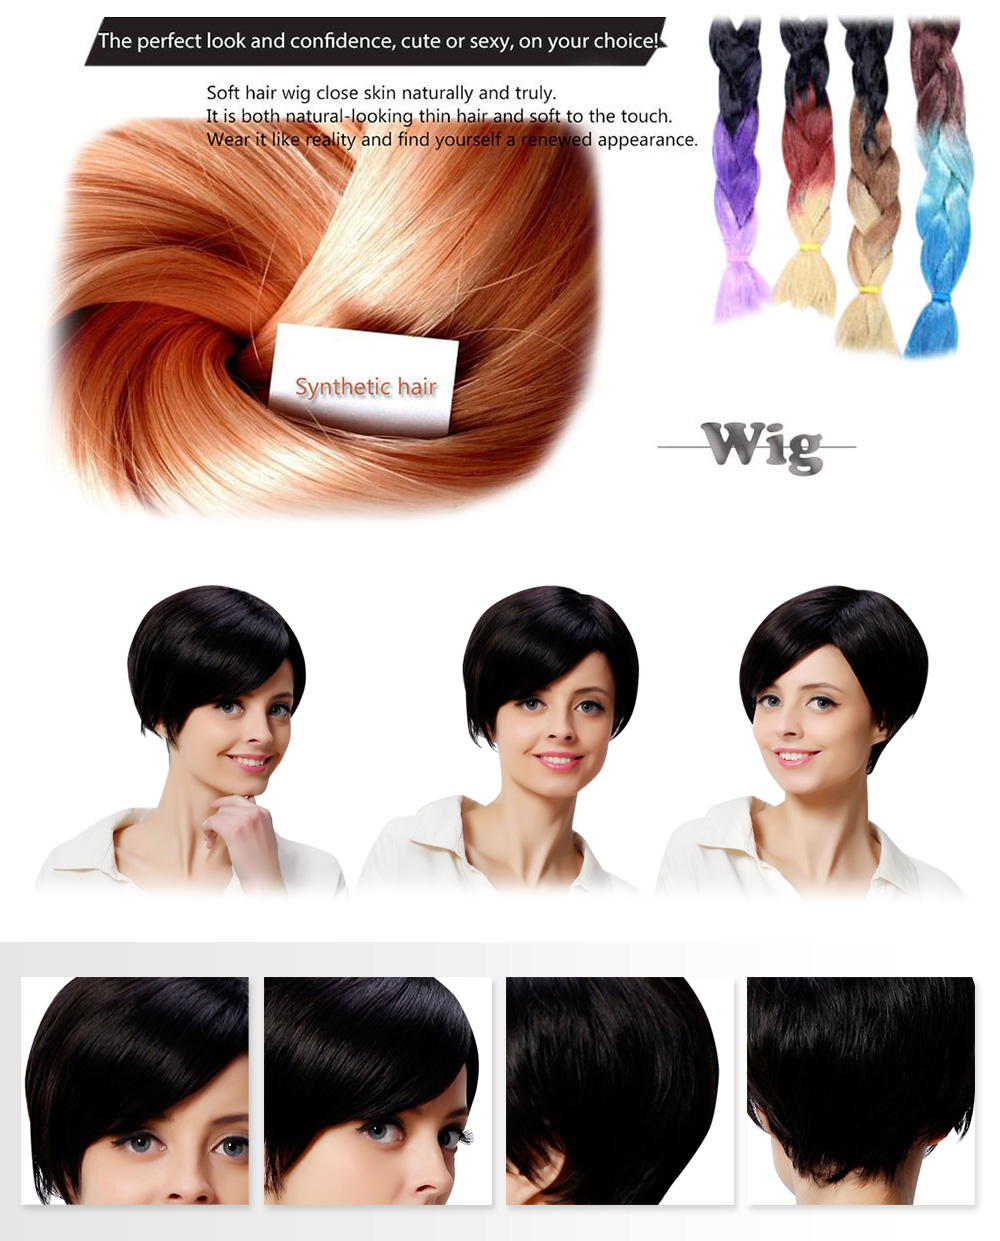 AISIHAIR Stylish Short Shaggy Side Bang Synthetic Black Hair Wigs for Women